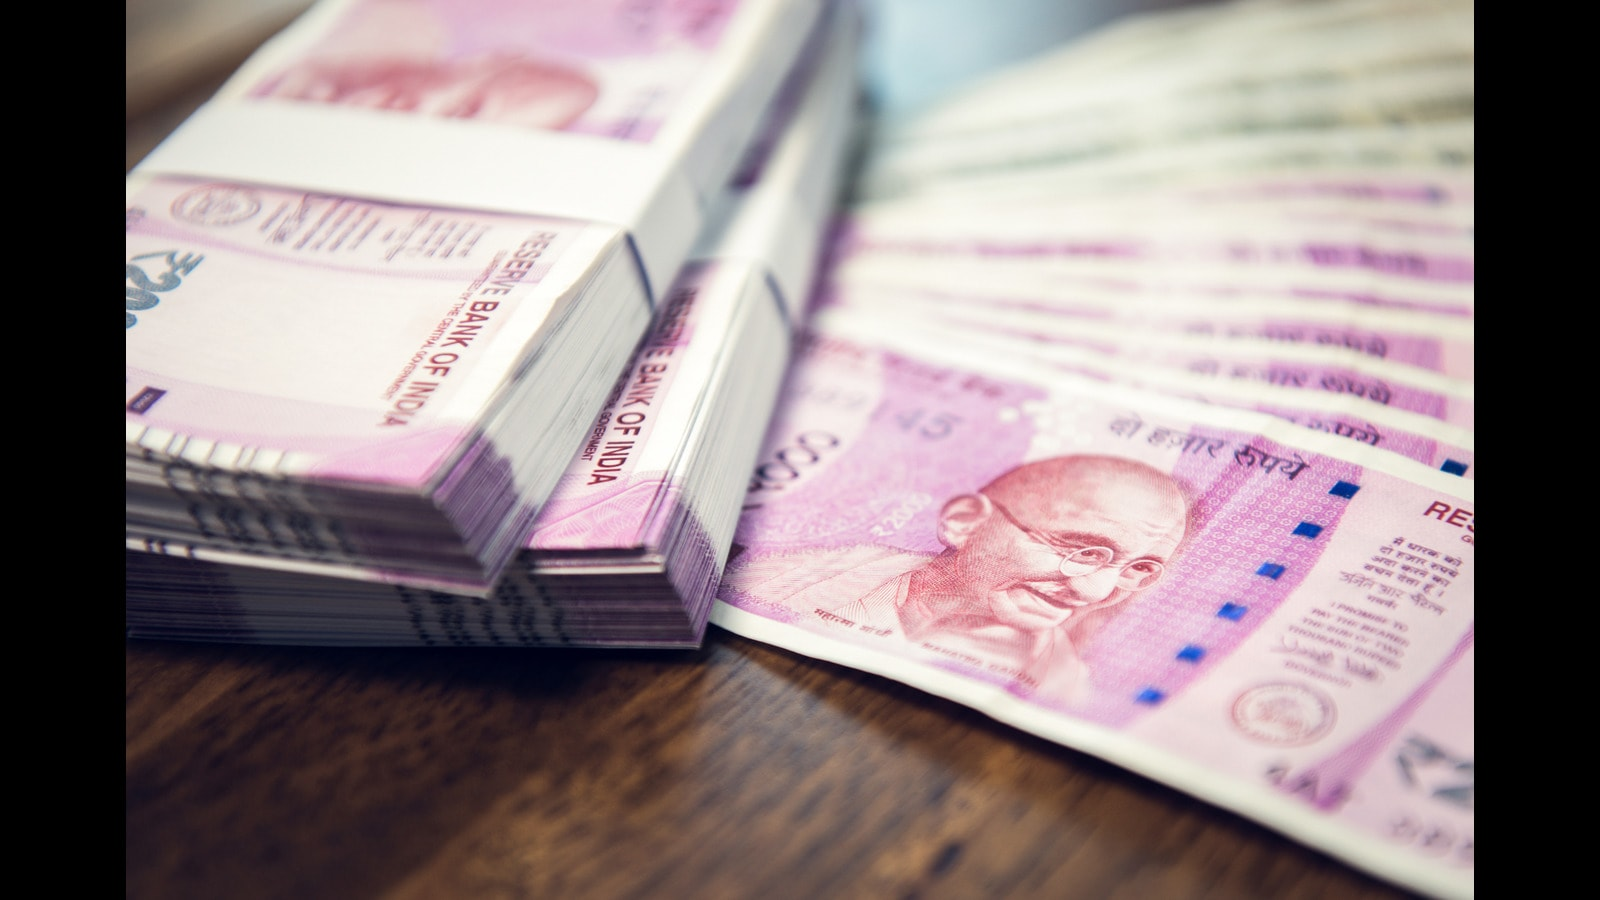 Thane forest department officer arrested for demanding bribe from subordinate